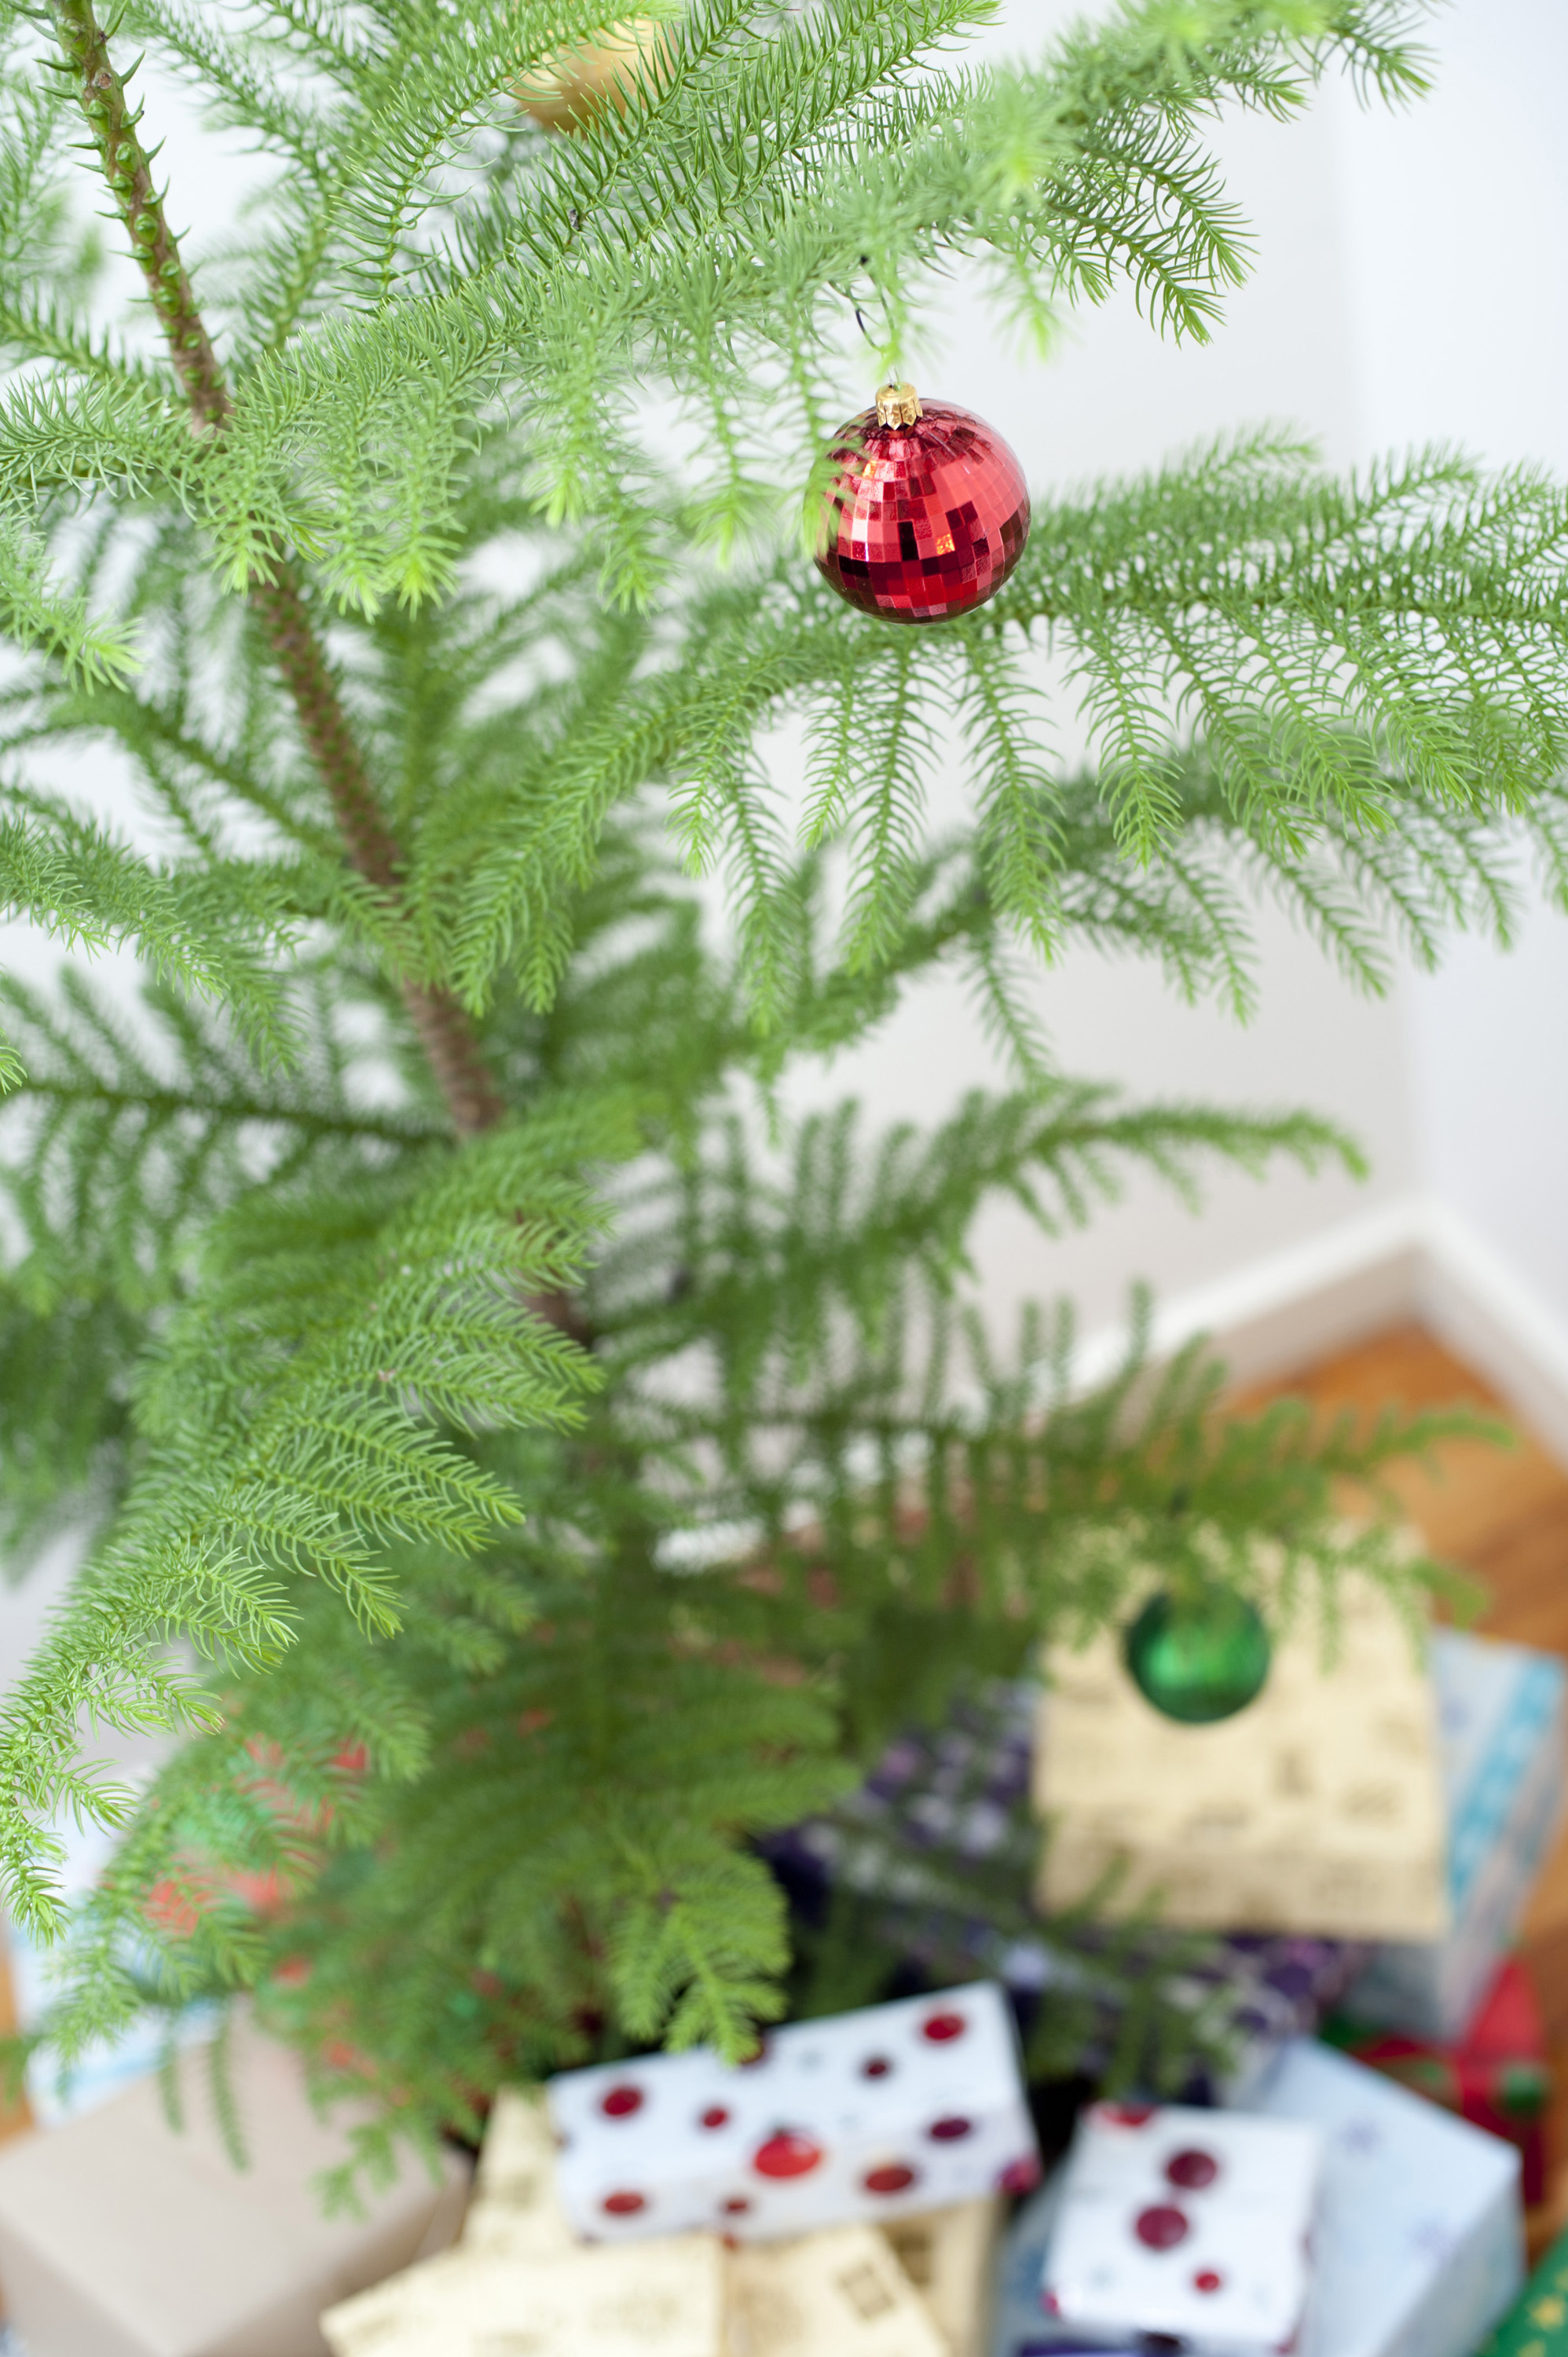 Single shiny red bauble on a natural pine Christmas tree surrounded by colourful gifts, focus to the ornament